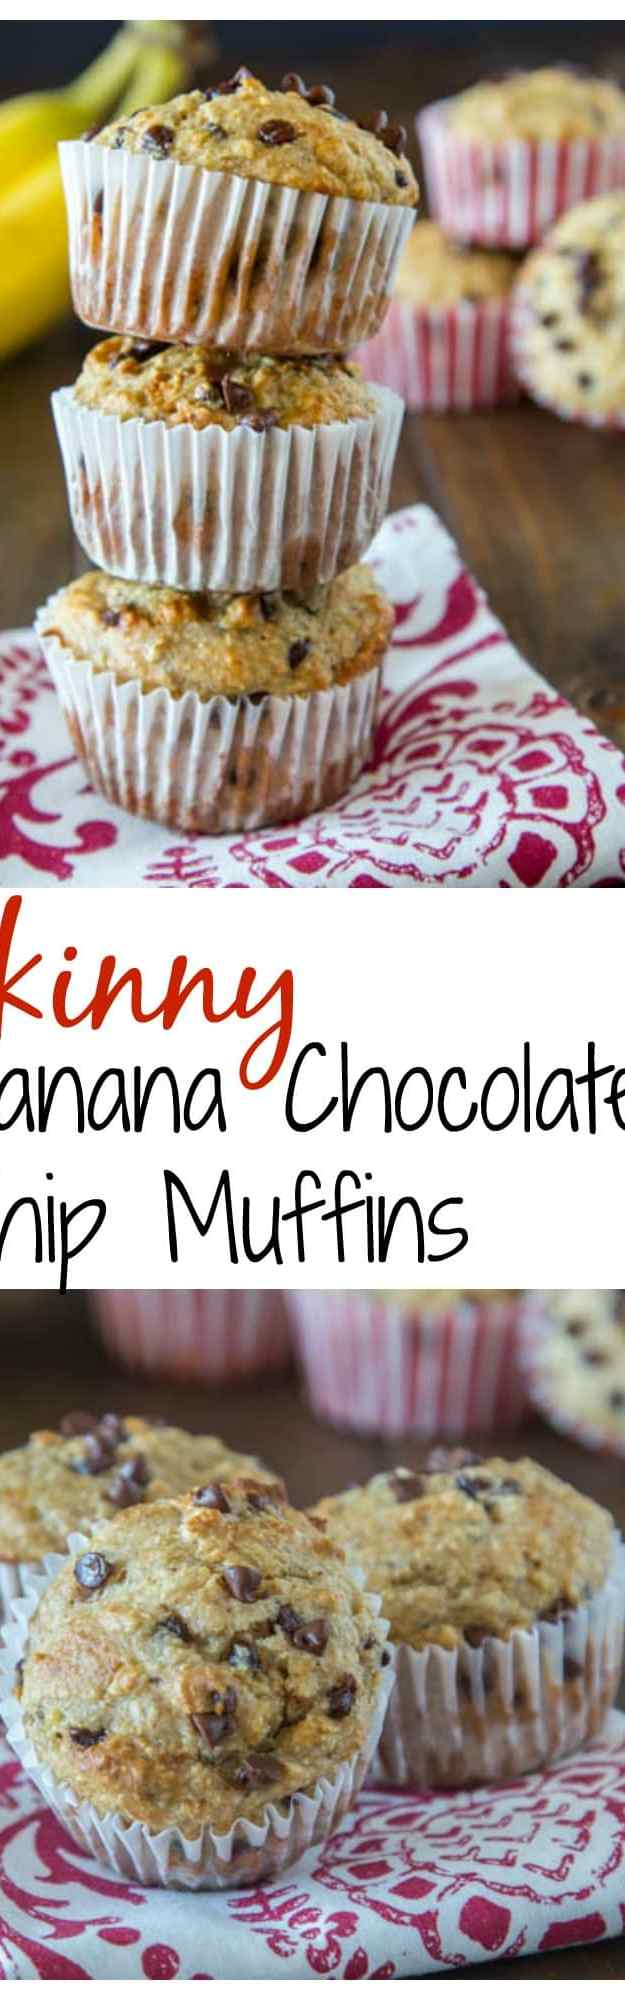 Skinny Banana Chocolate Chip Muffins - a lightened up (but you would never know it) banana muffin with chocolate chips. They freeze well, so you can always have them on hand for quick breakfasts.